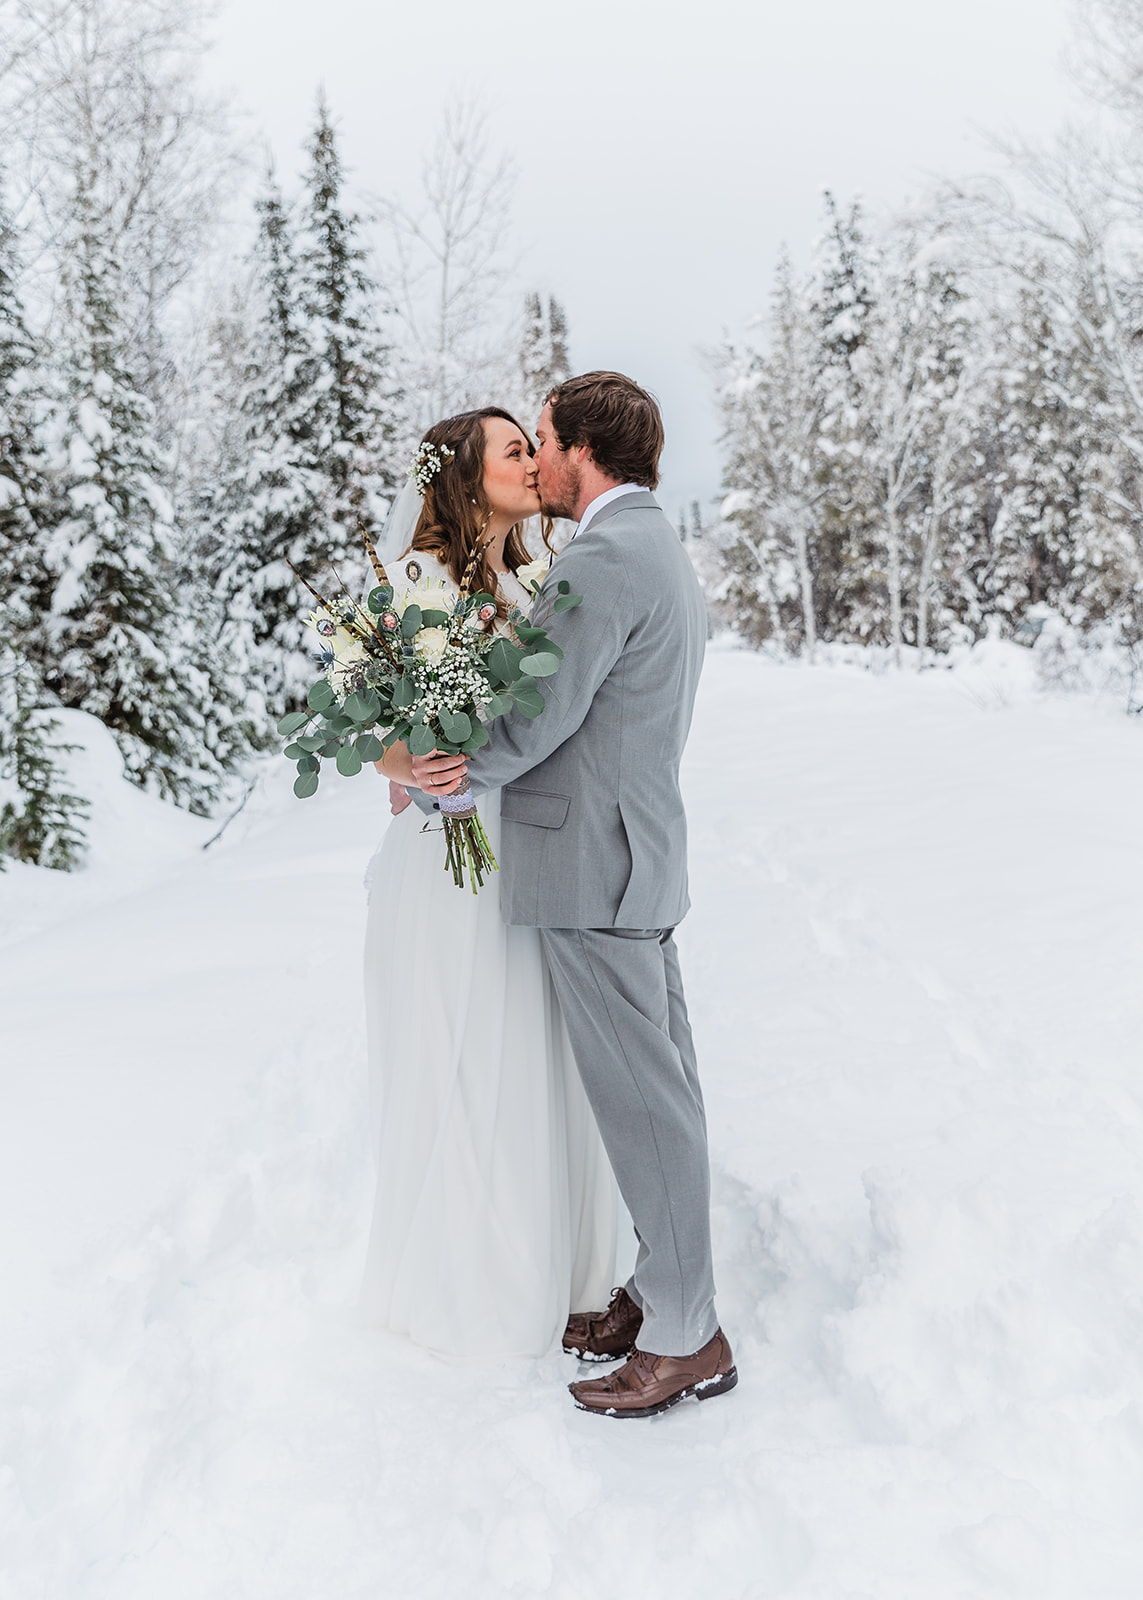 kissing couple pose in the woods snowy day photography womens wedding  hairstyle lose curls long and romantic white flowers in her hair grey mens wedding suit romantic wedding couples portrait formal wedding pictures tony's grove in cache valley #winterwedding #formals #tony'sgrove #cachevalley #snowcoveredtrees #bellaalderphotography #professionalphotographer #winterwonderland #couplegoals #weddingattire